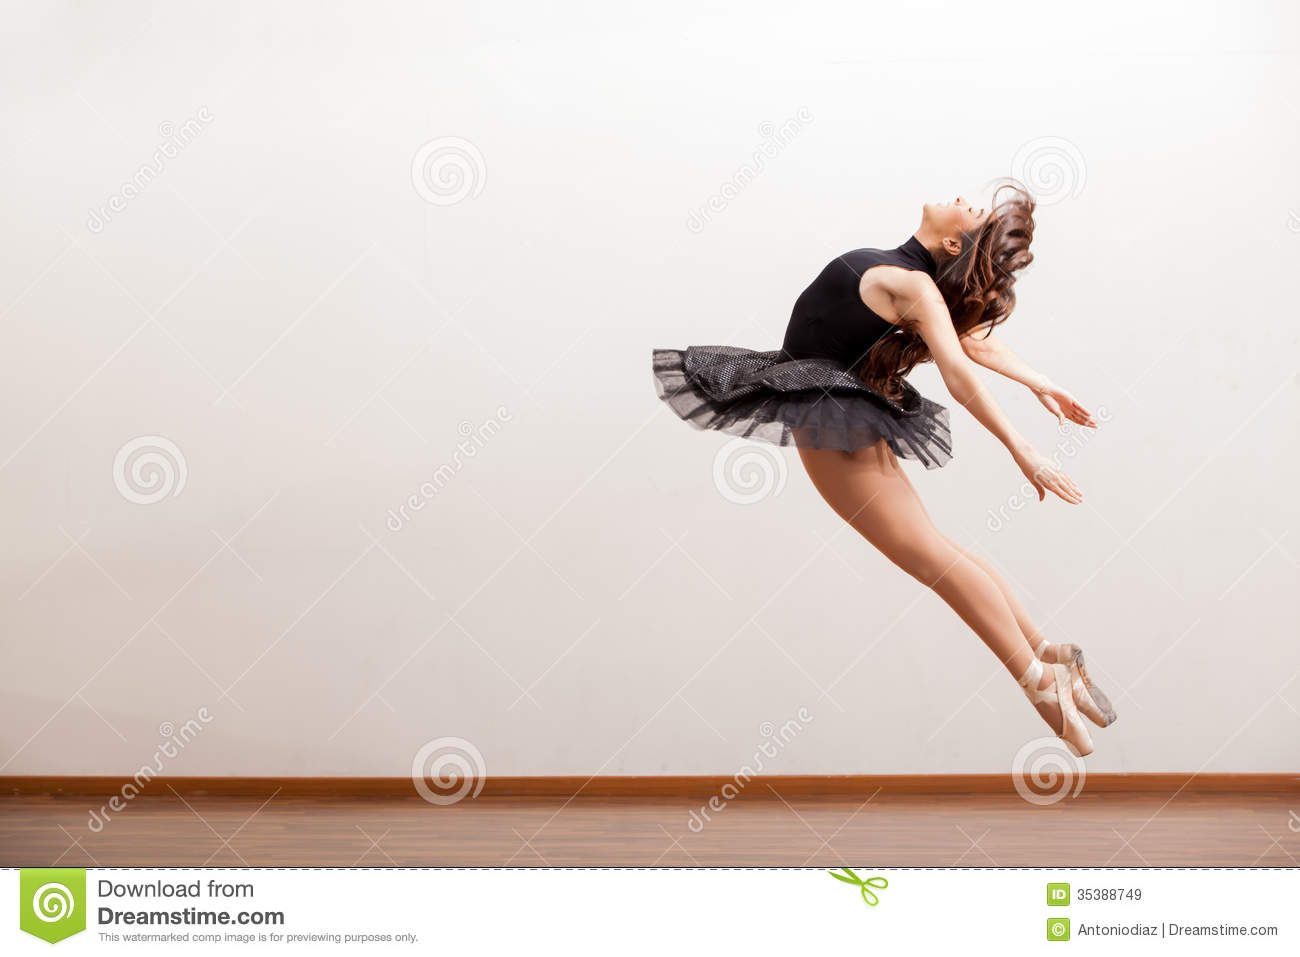 Gorgeous Ballerina During A Jump Stock Image - Image: 35388749